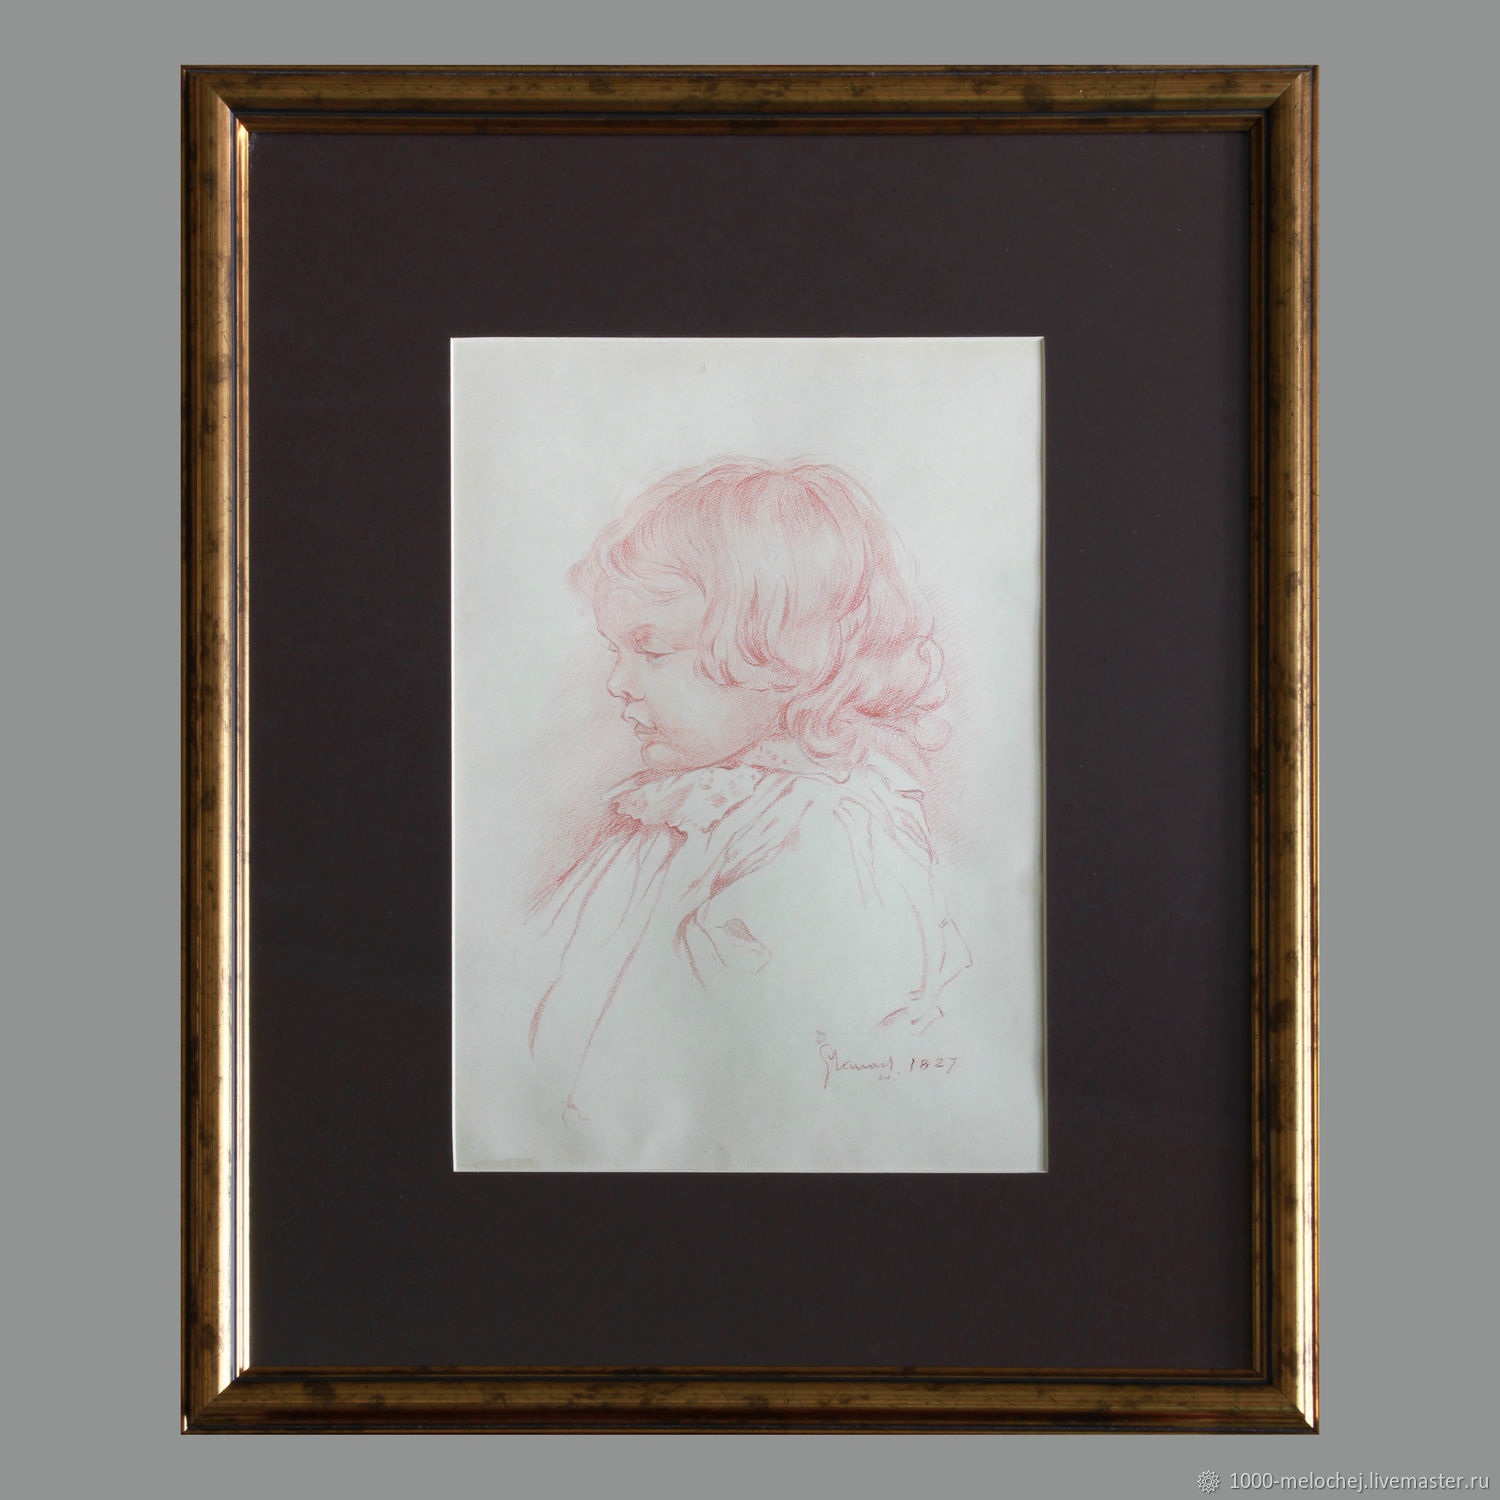 Antique painting 1827 'children's portrait' 19th century, Pictures, Moscow,  Фото №1